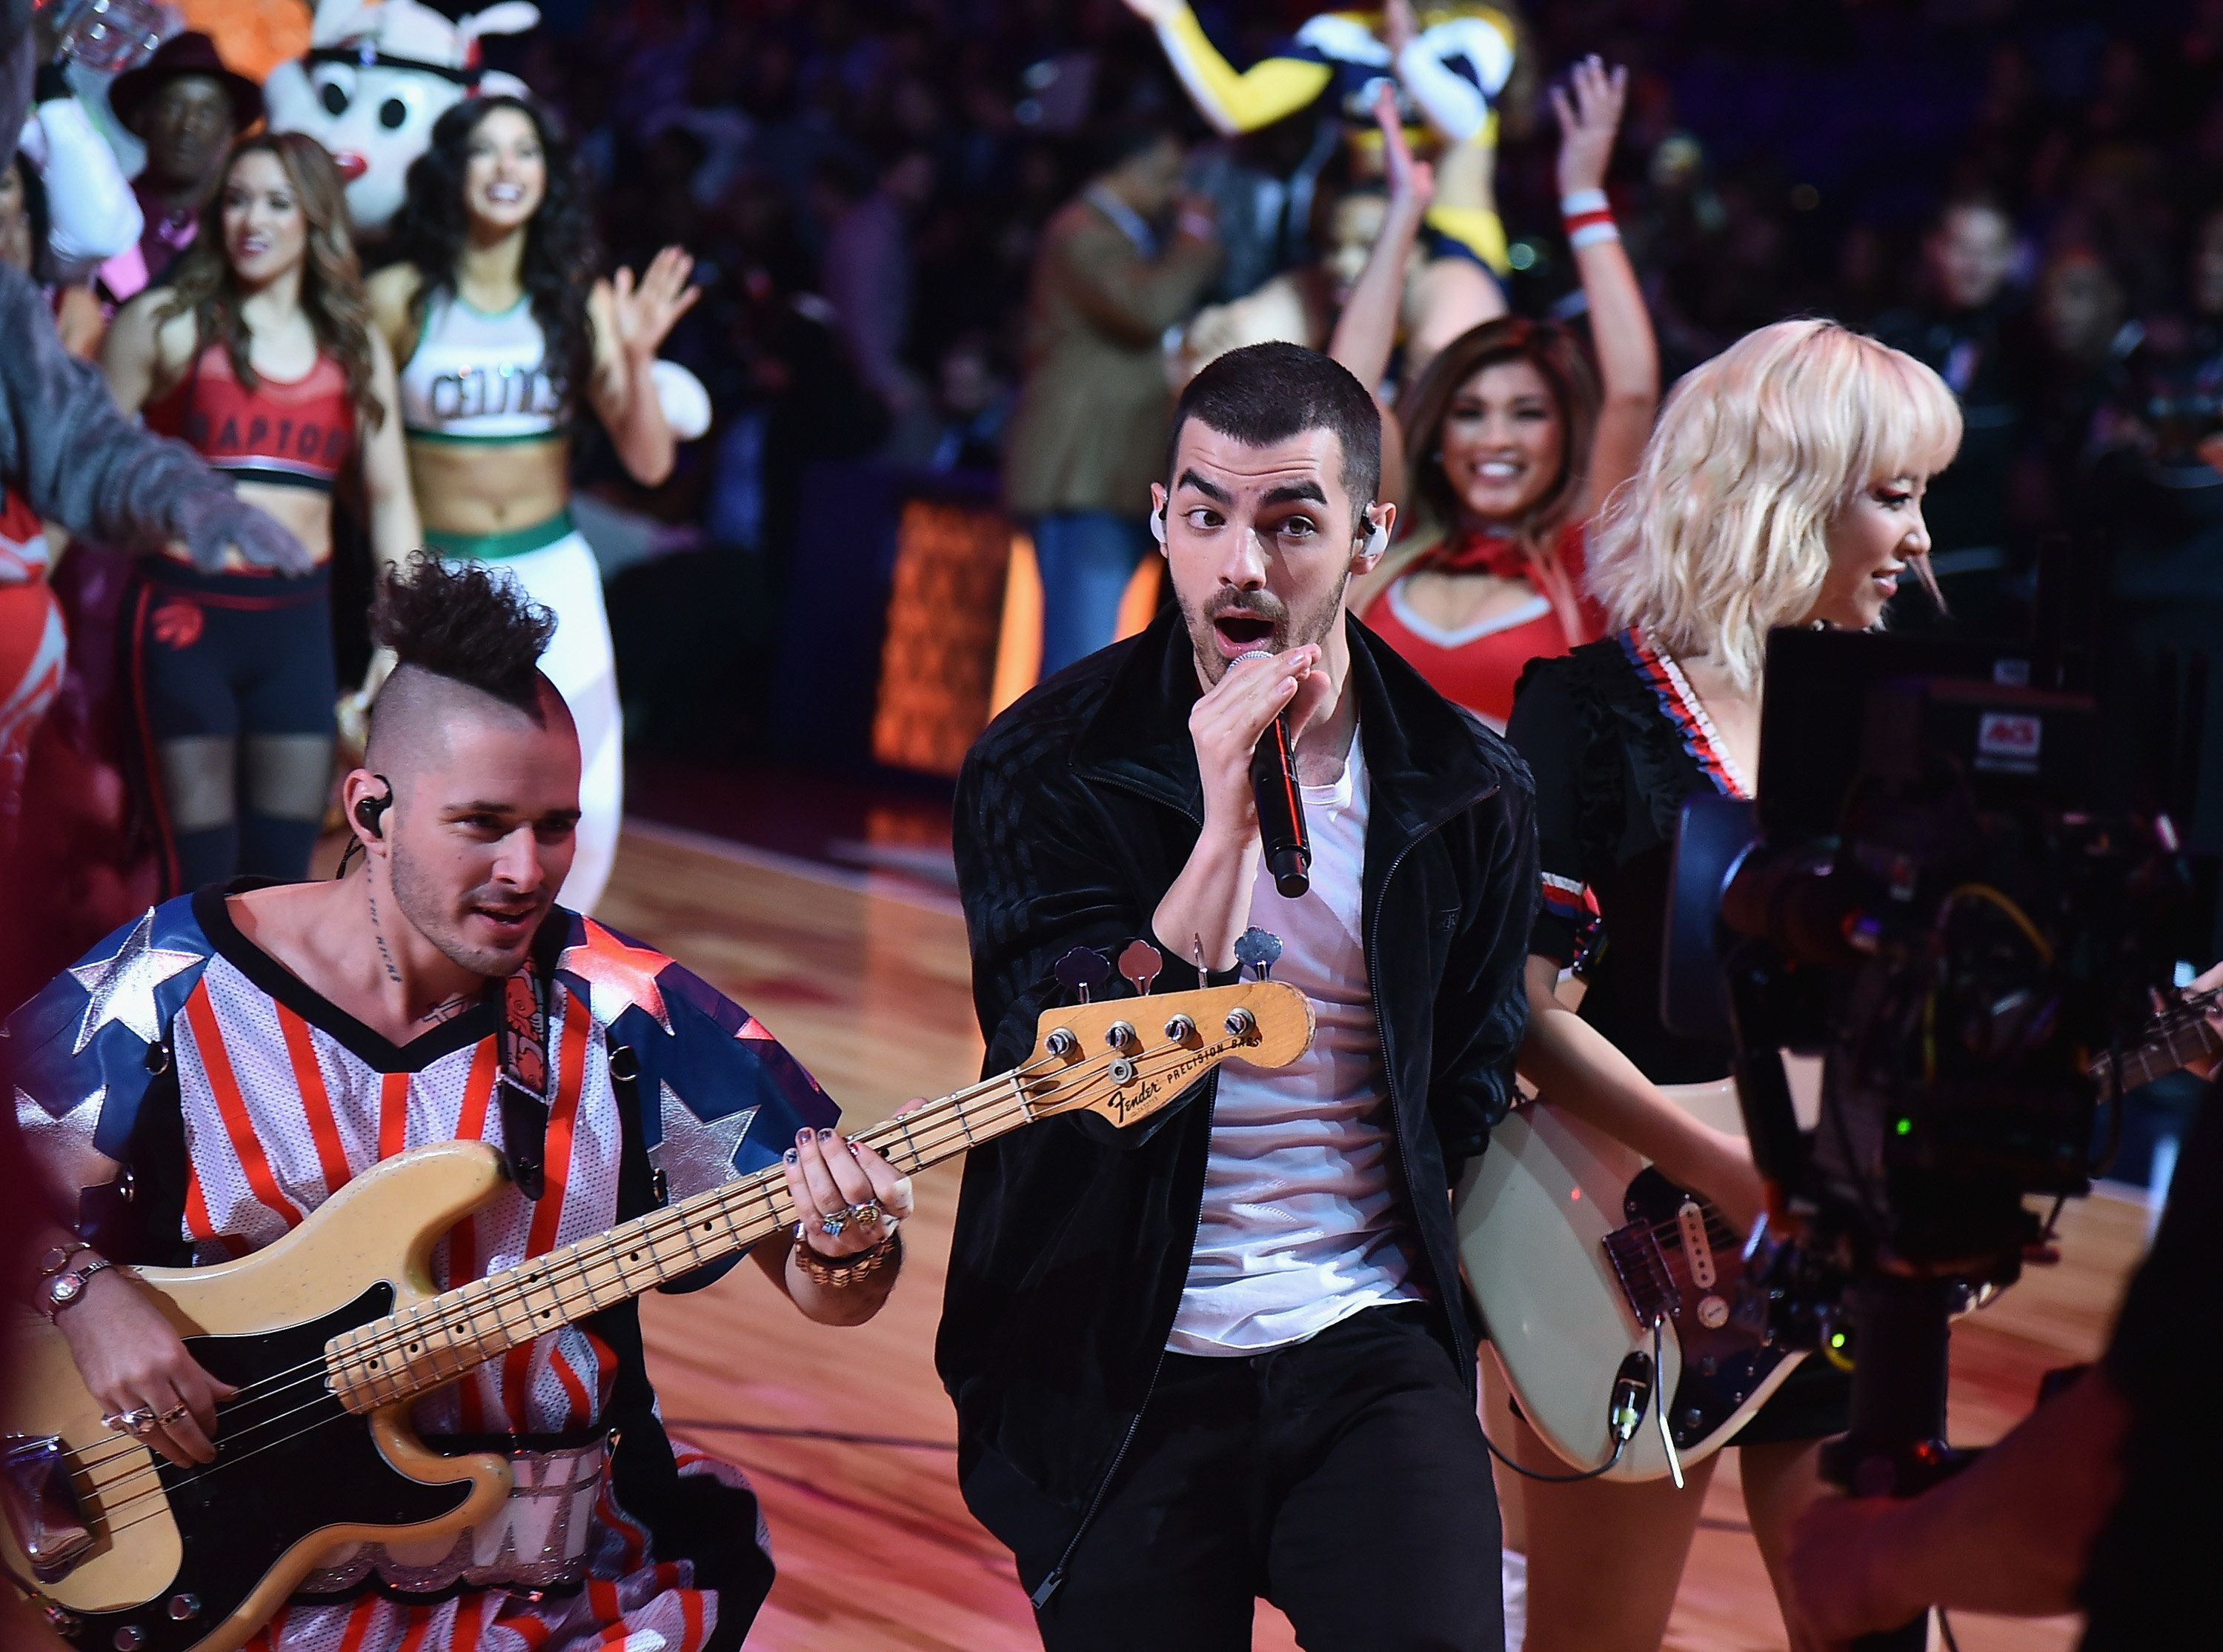 NEW ORLEANS, LA - FEBRUARY 18:  DNCE perform during the NBA All-Star Saturday Night at Smoothie King Center on February 18, 2017 in New Orleans, Louisiana.  (Photo by Theo Wargo/Getty Images)